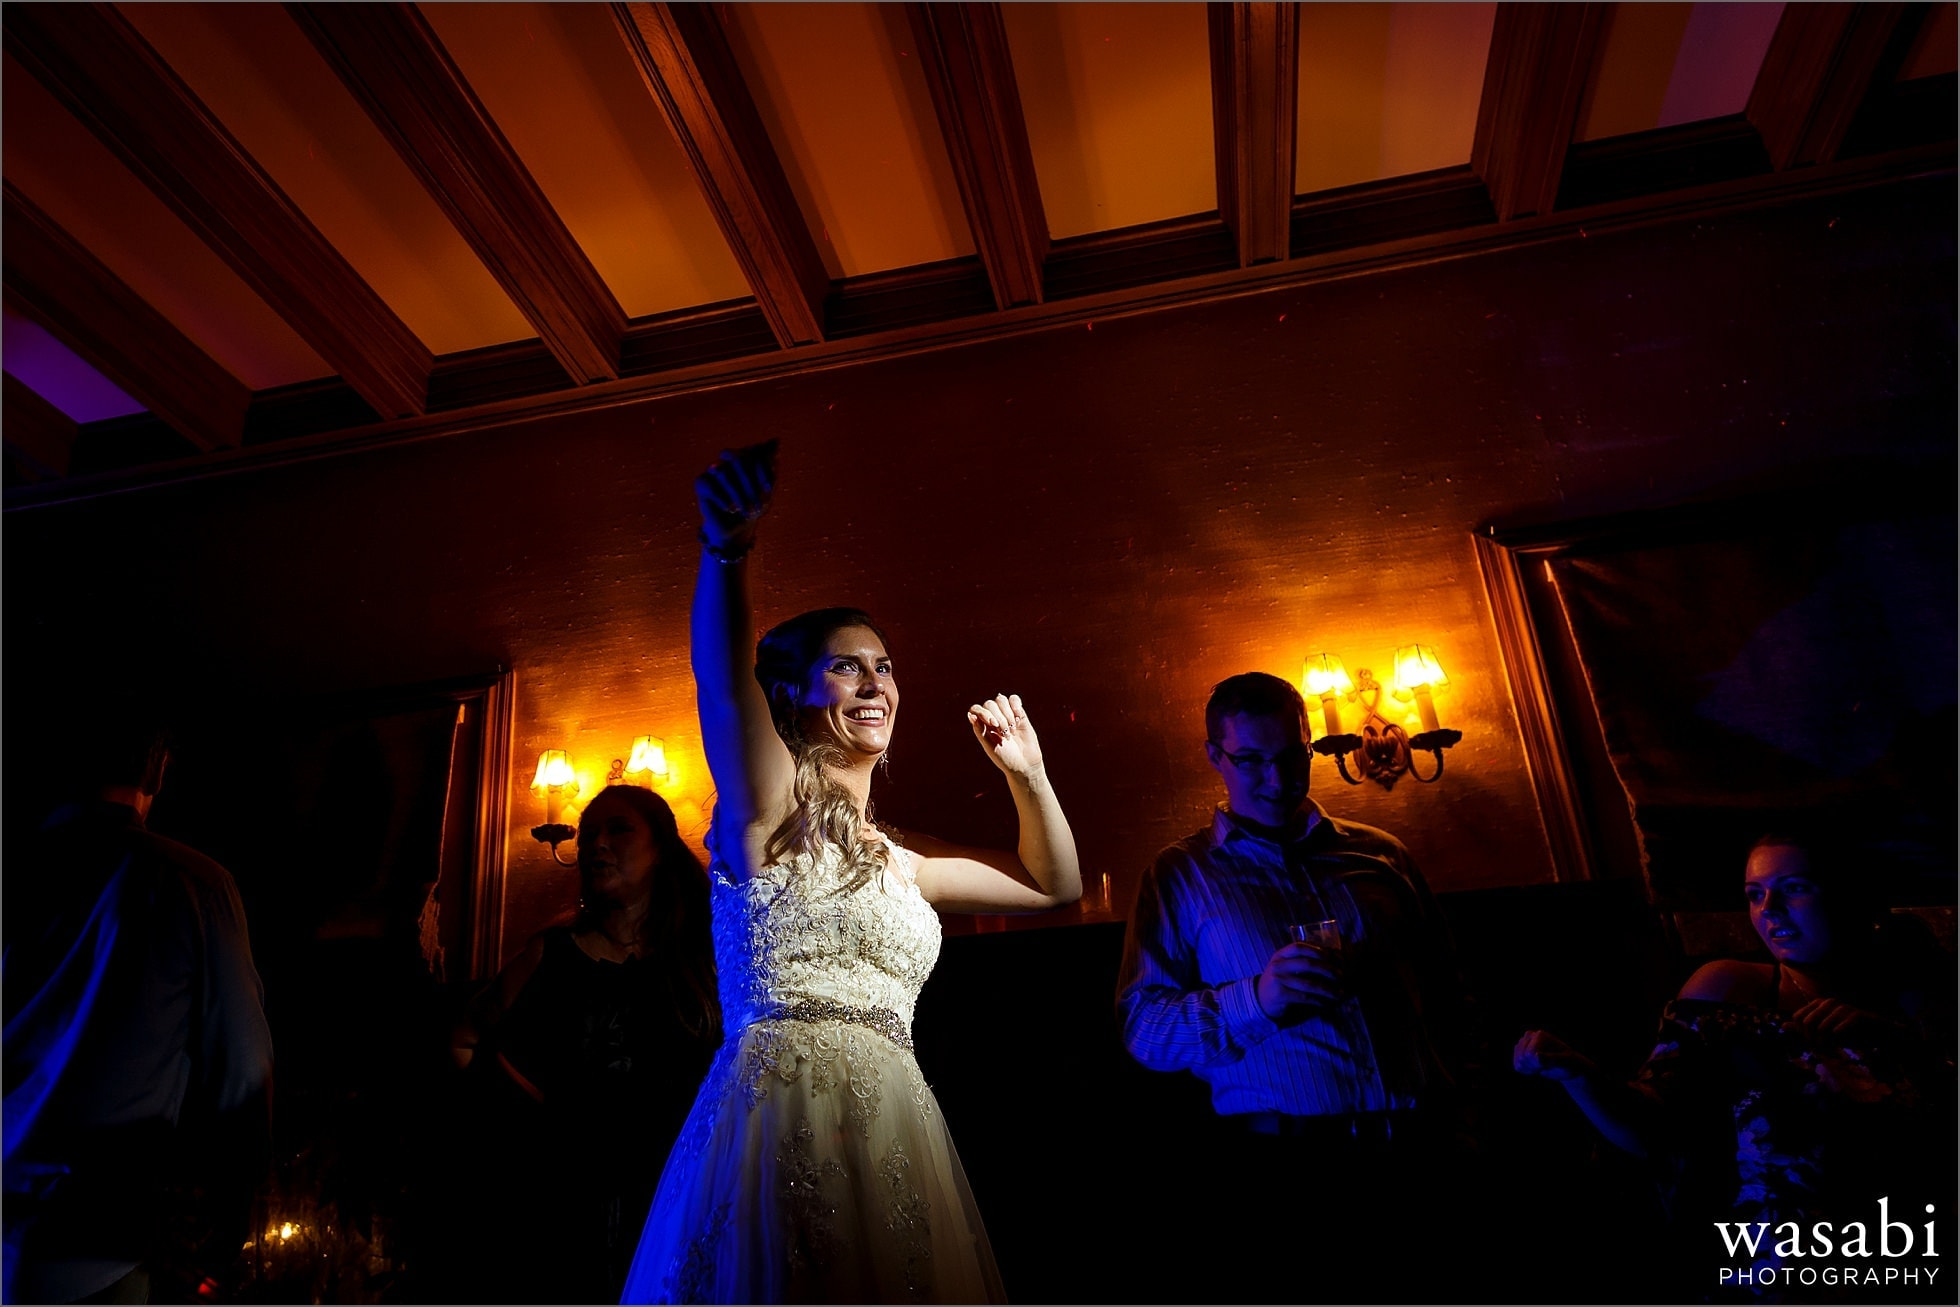 hard light bride dancing photo during wedding reception at Cheney Mansion in Oak Park